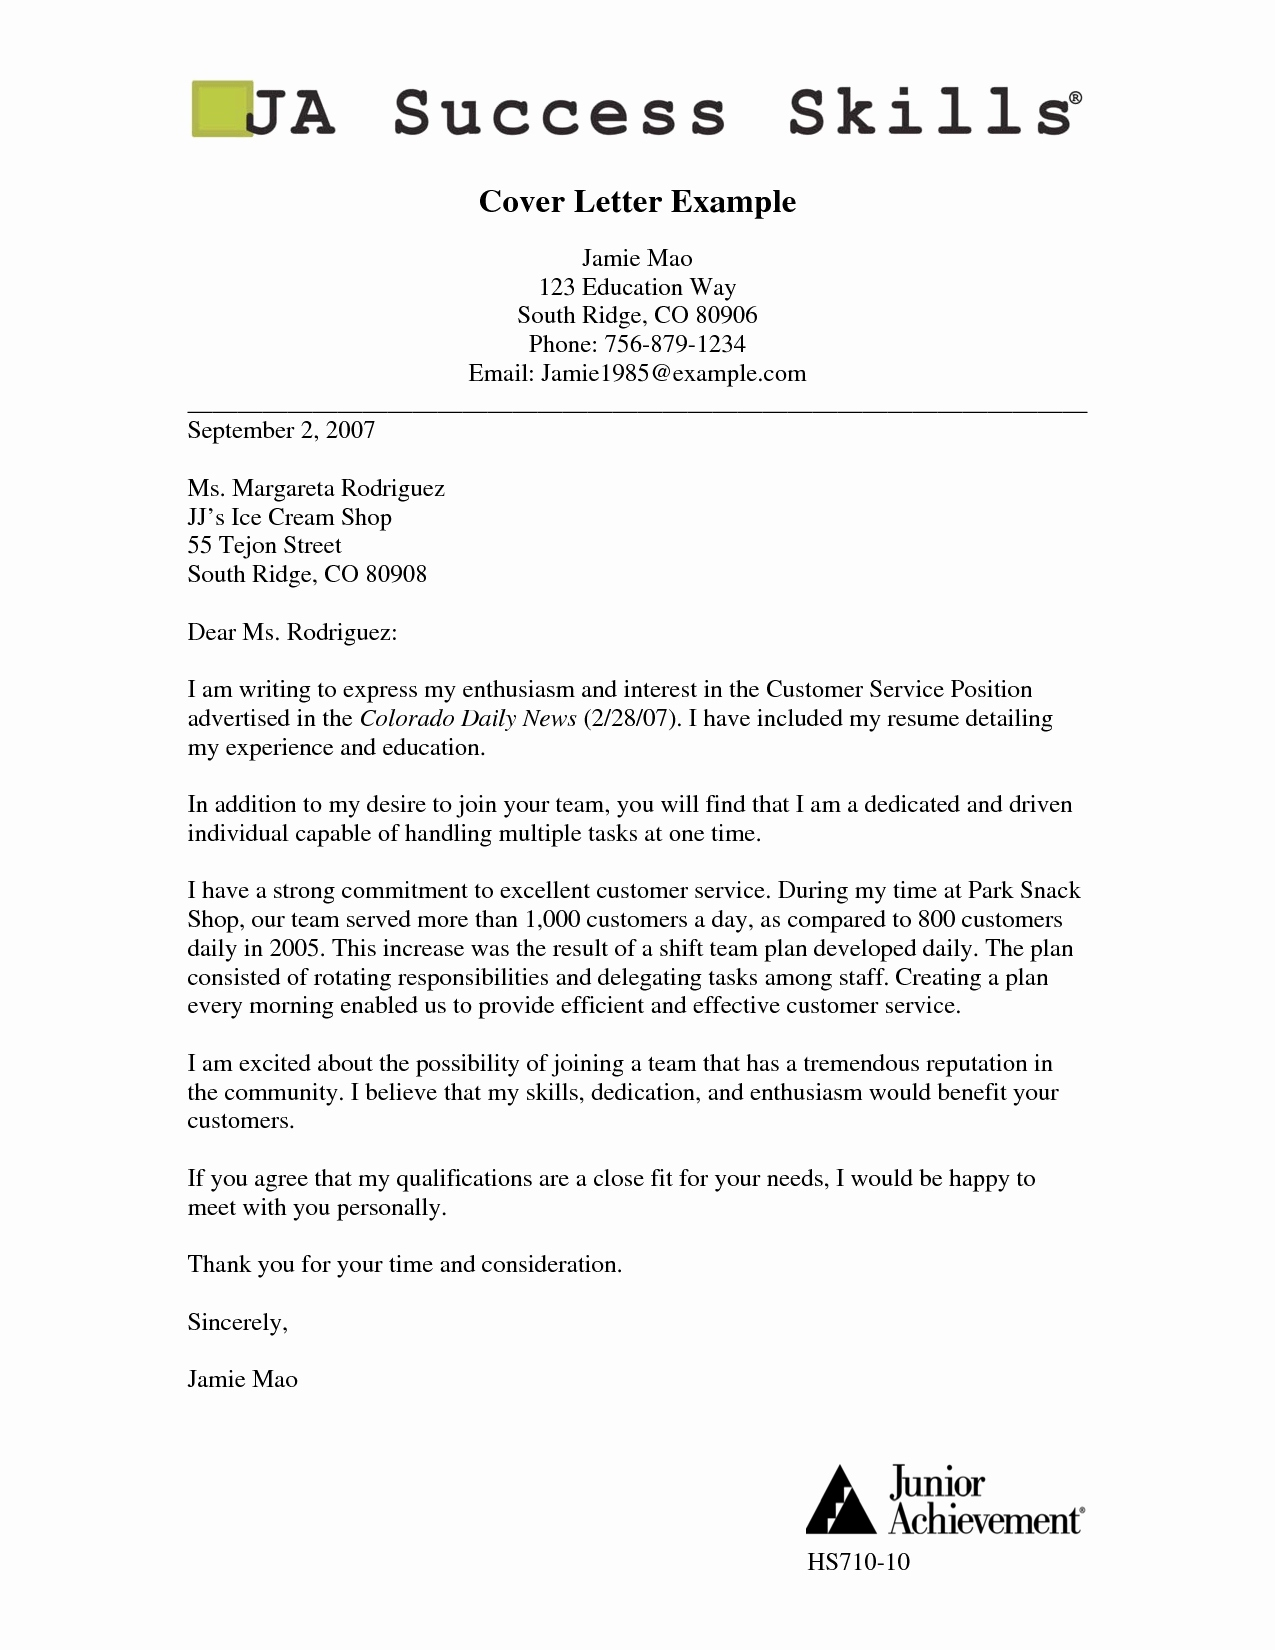 Will Serve Letter Template - Powerful Cover Letter Examples 25 Samples Cover Letters for Job Best